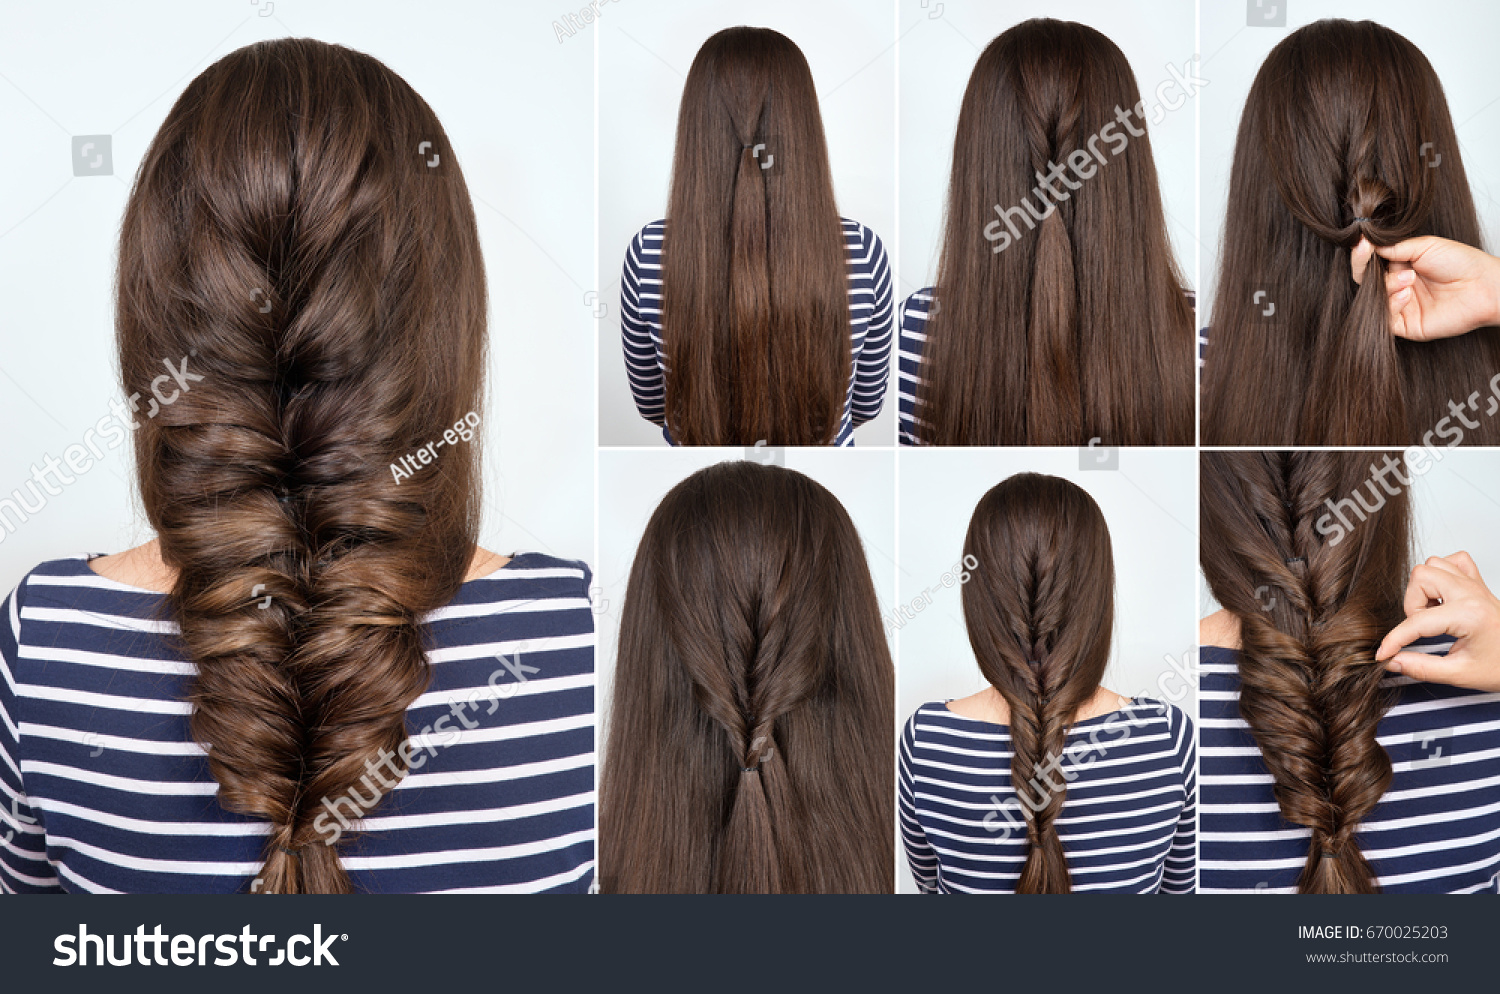 Hair tutorial hairstyle braid party backstage stock photo hair tutorial hairstyle braid for party backstage technique of weaving plait step by step pmusecretfo Image collections